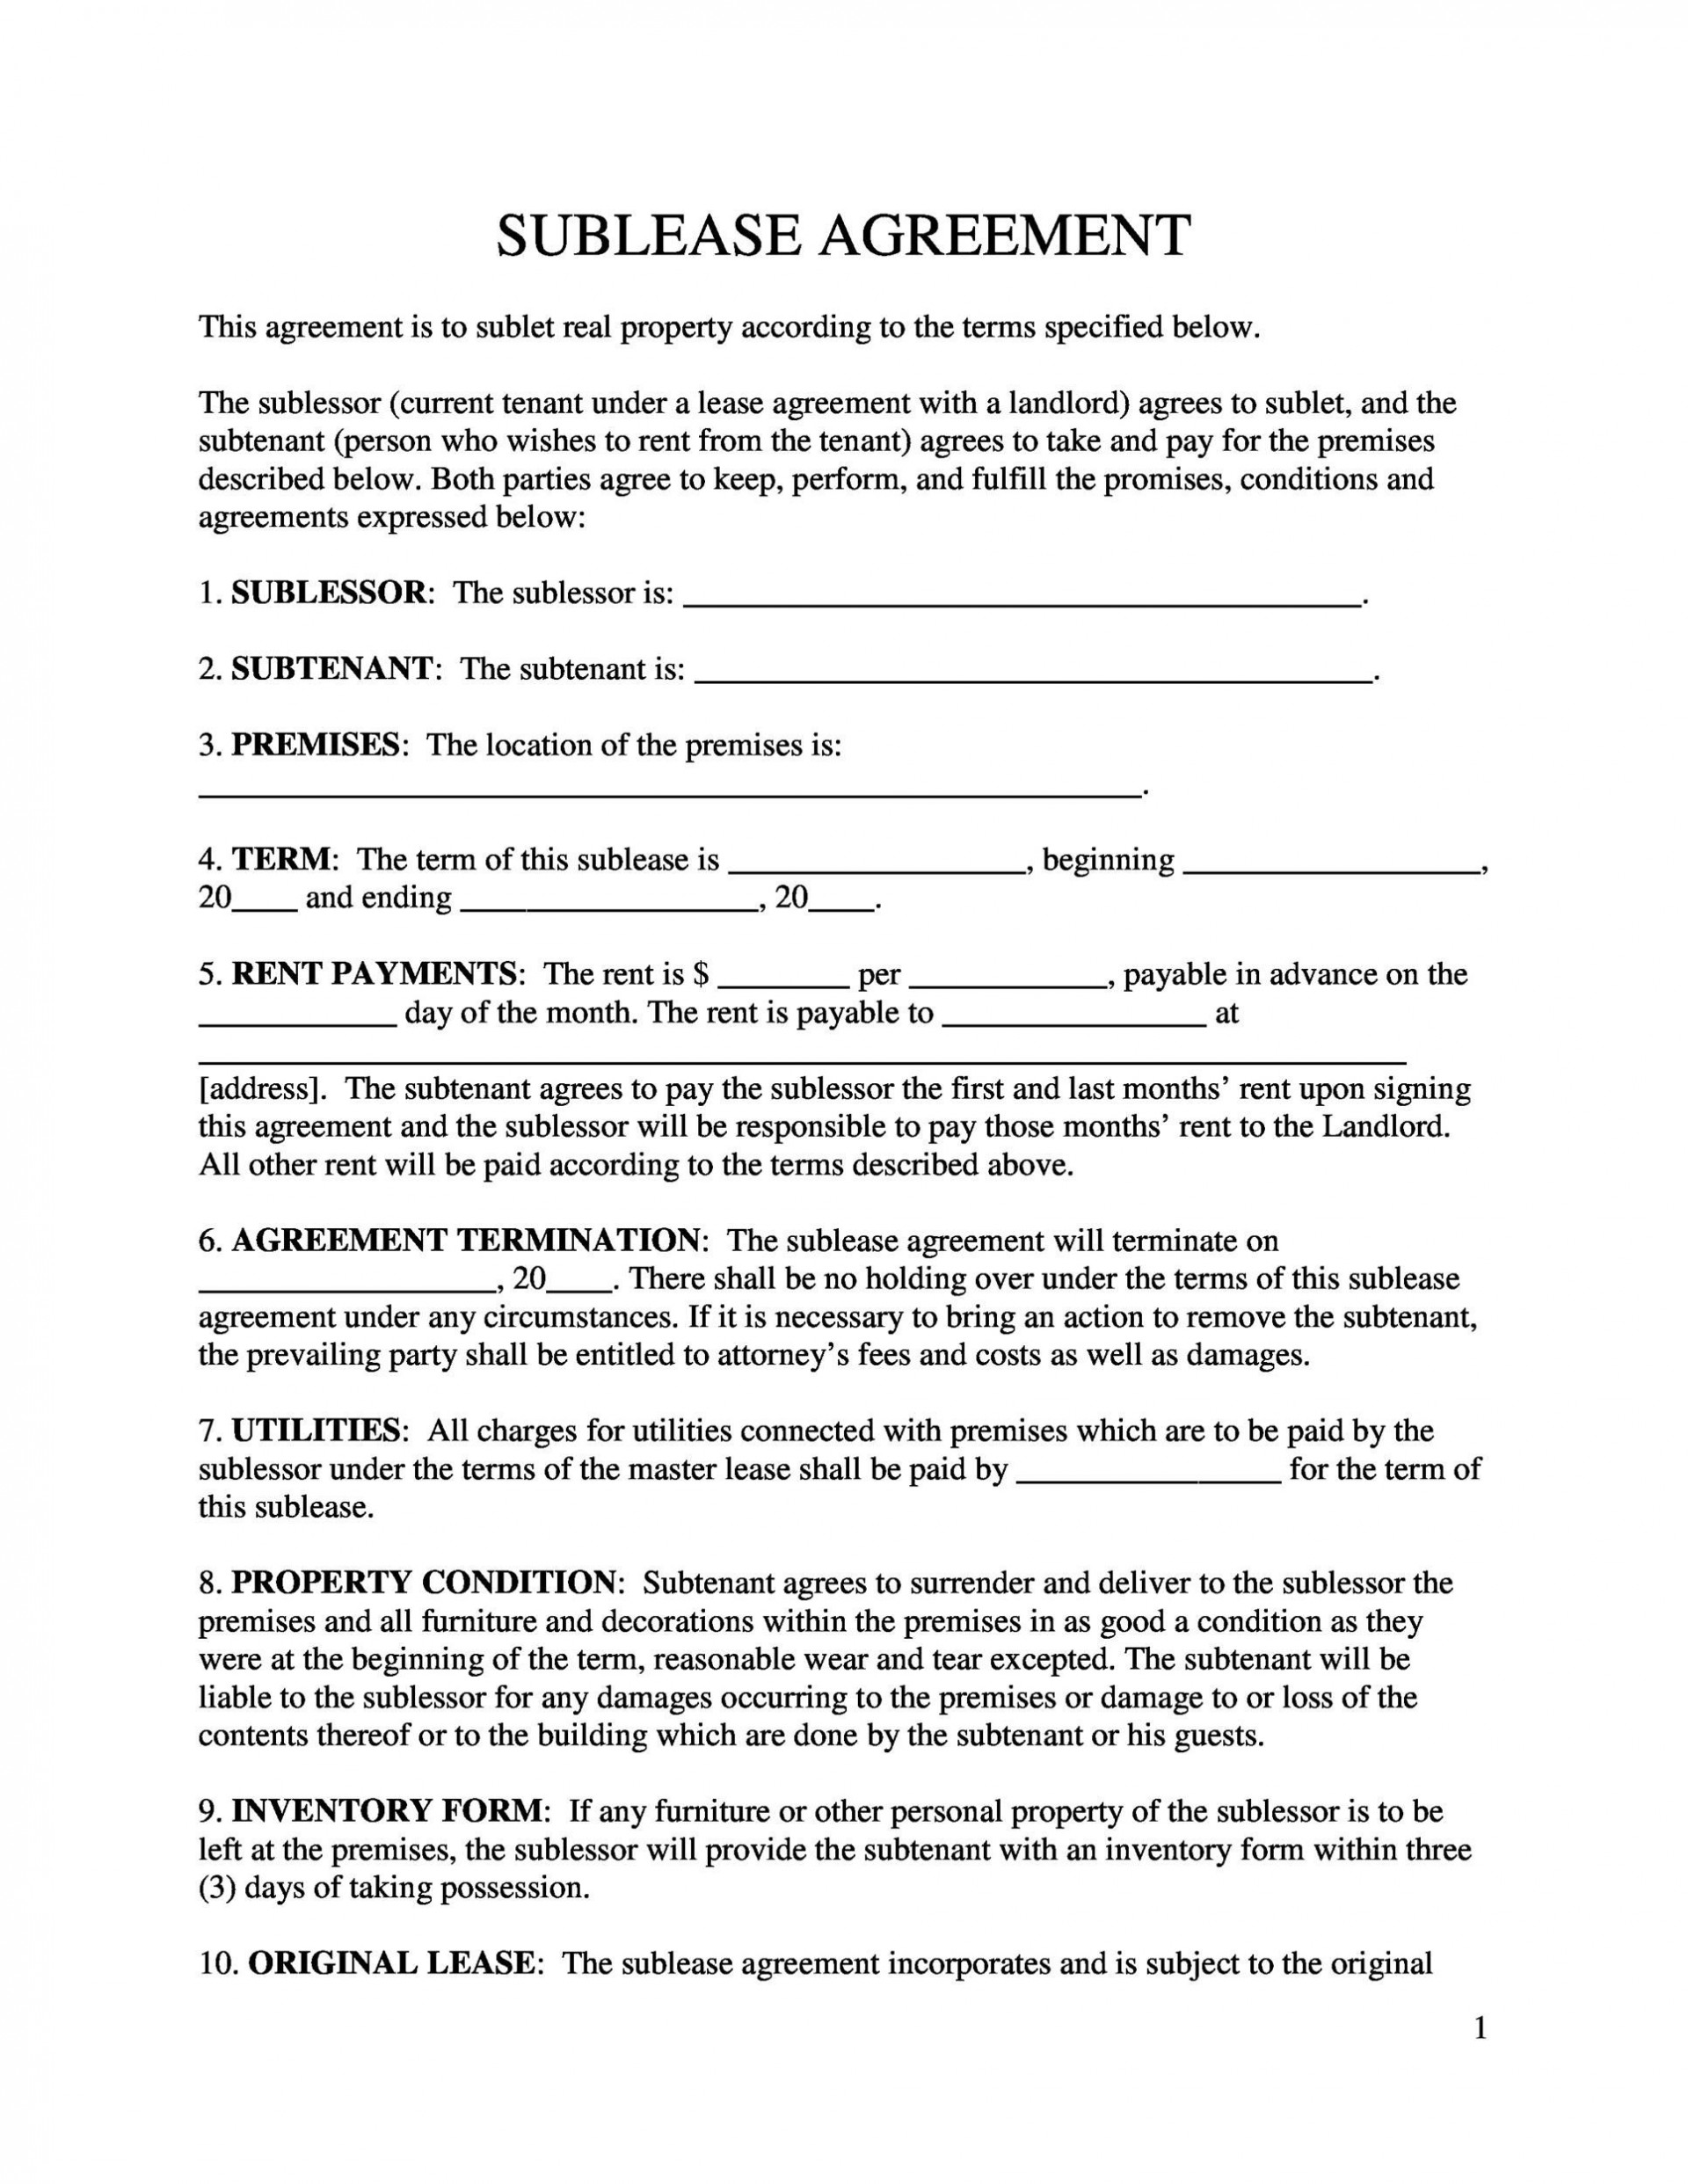 005 Fascinating Free Sublease Agreement Template Pdf Photo  Room Rental Car Form Residential Lease1920